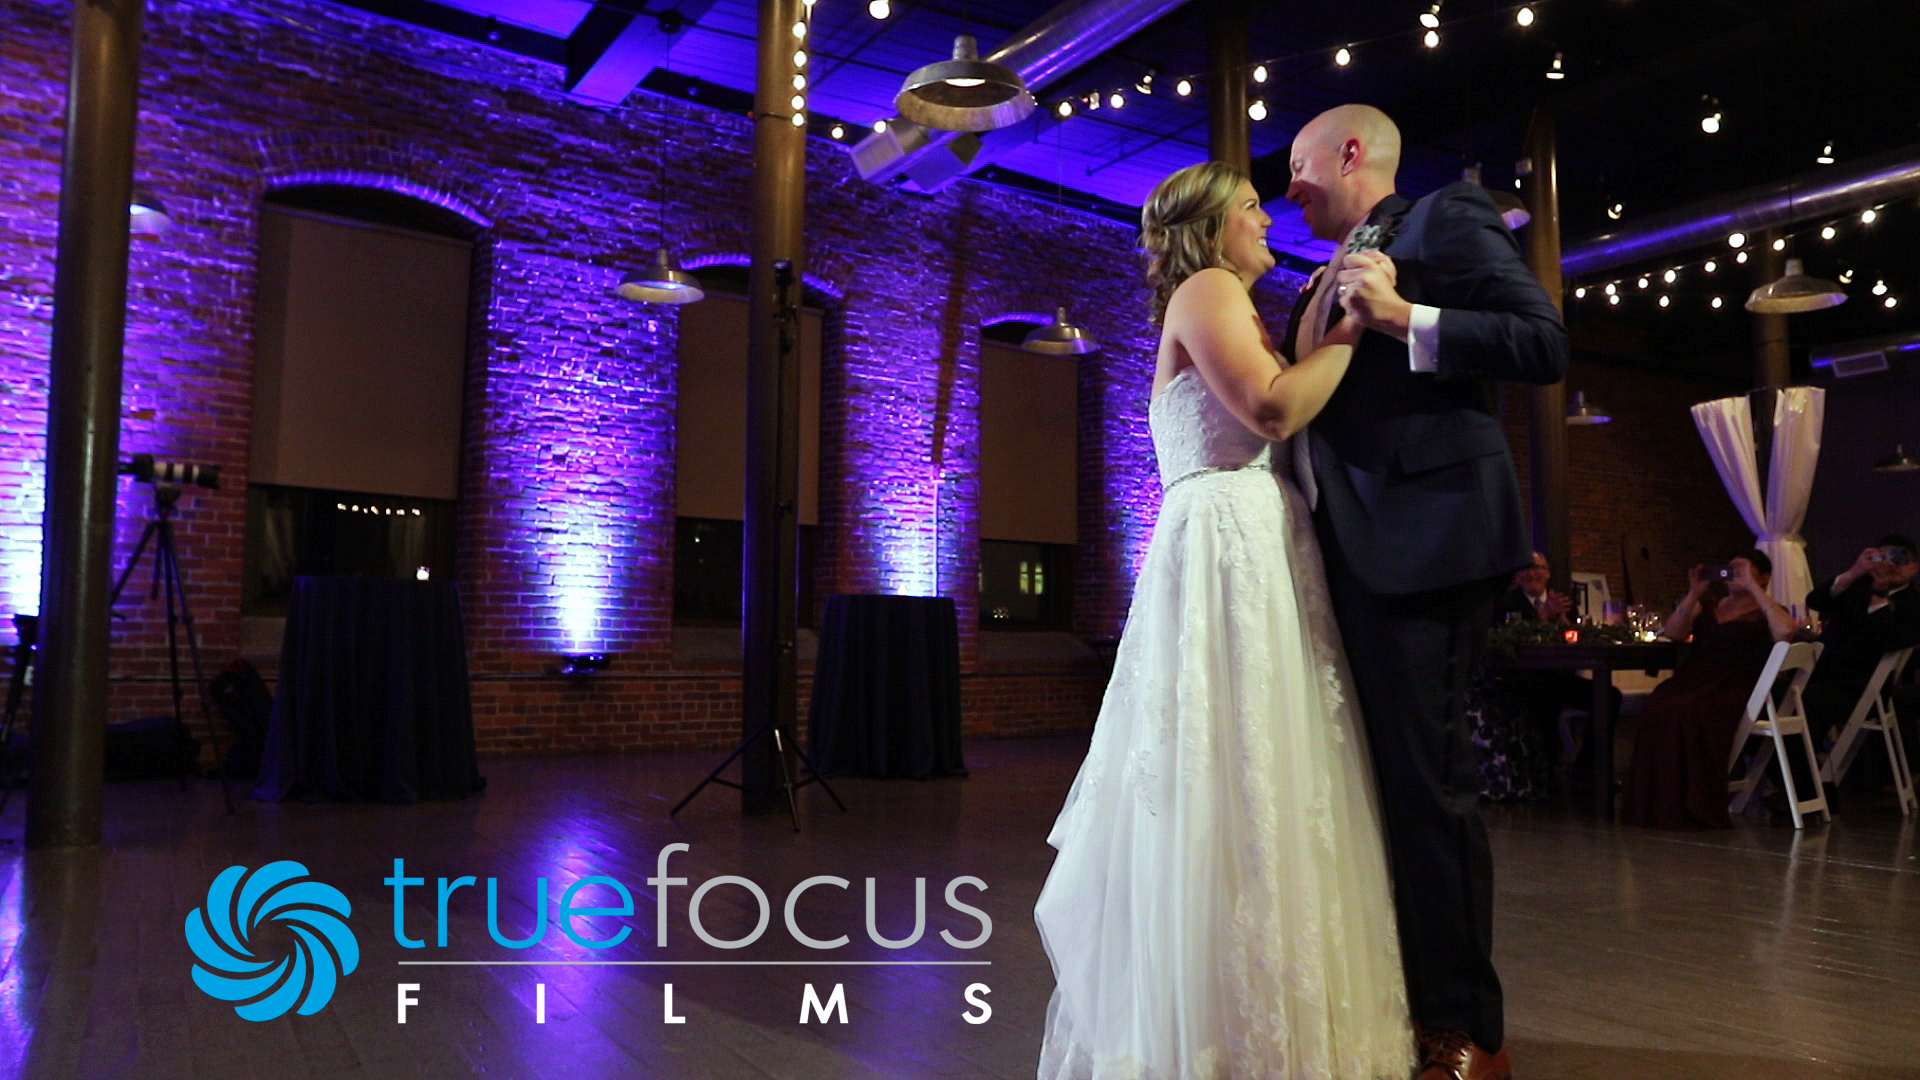 Want to see some of the recent wedding films we've produced? - Awesome, you've come to the right place!